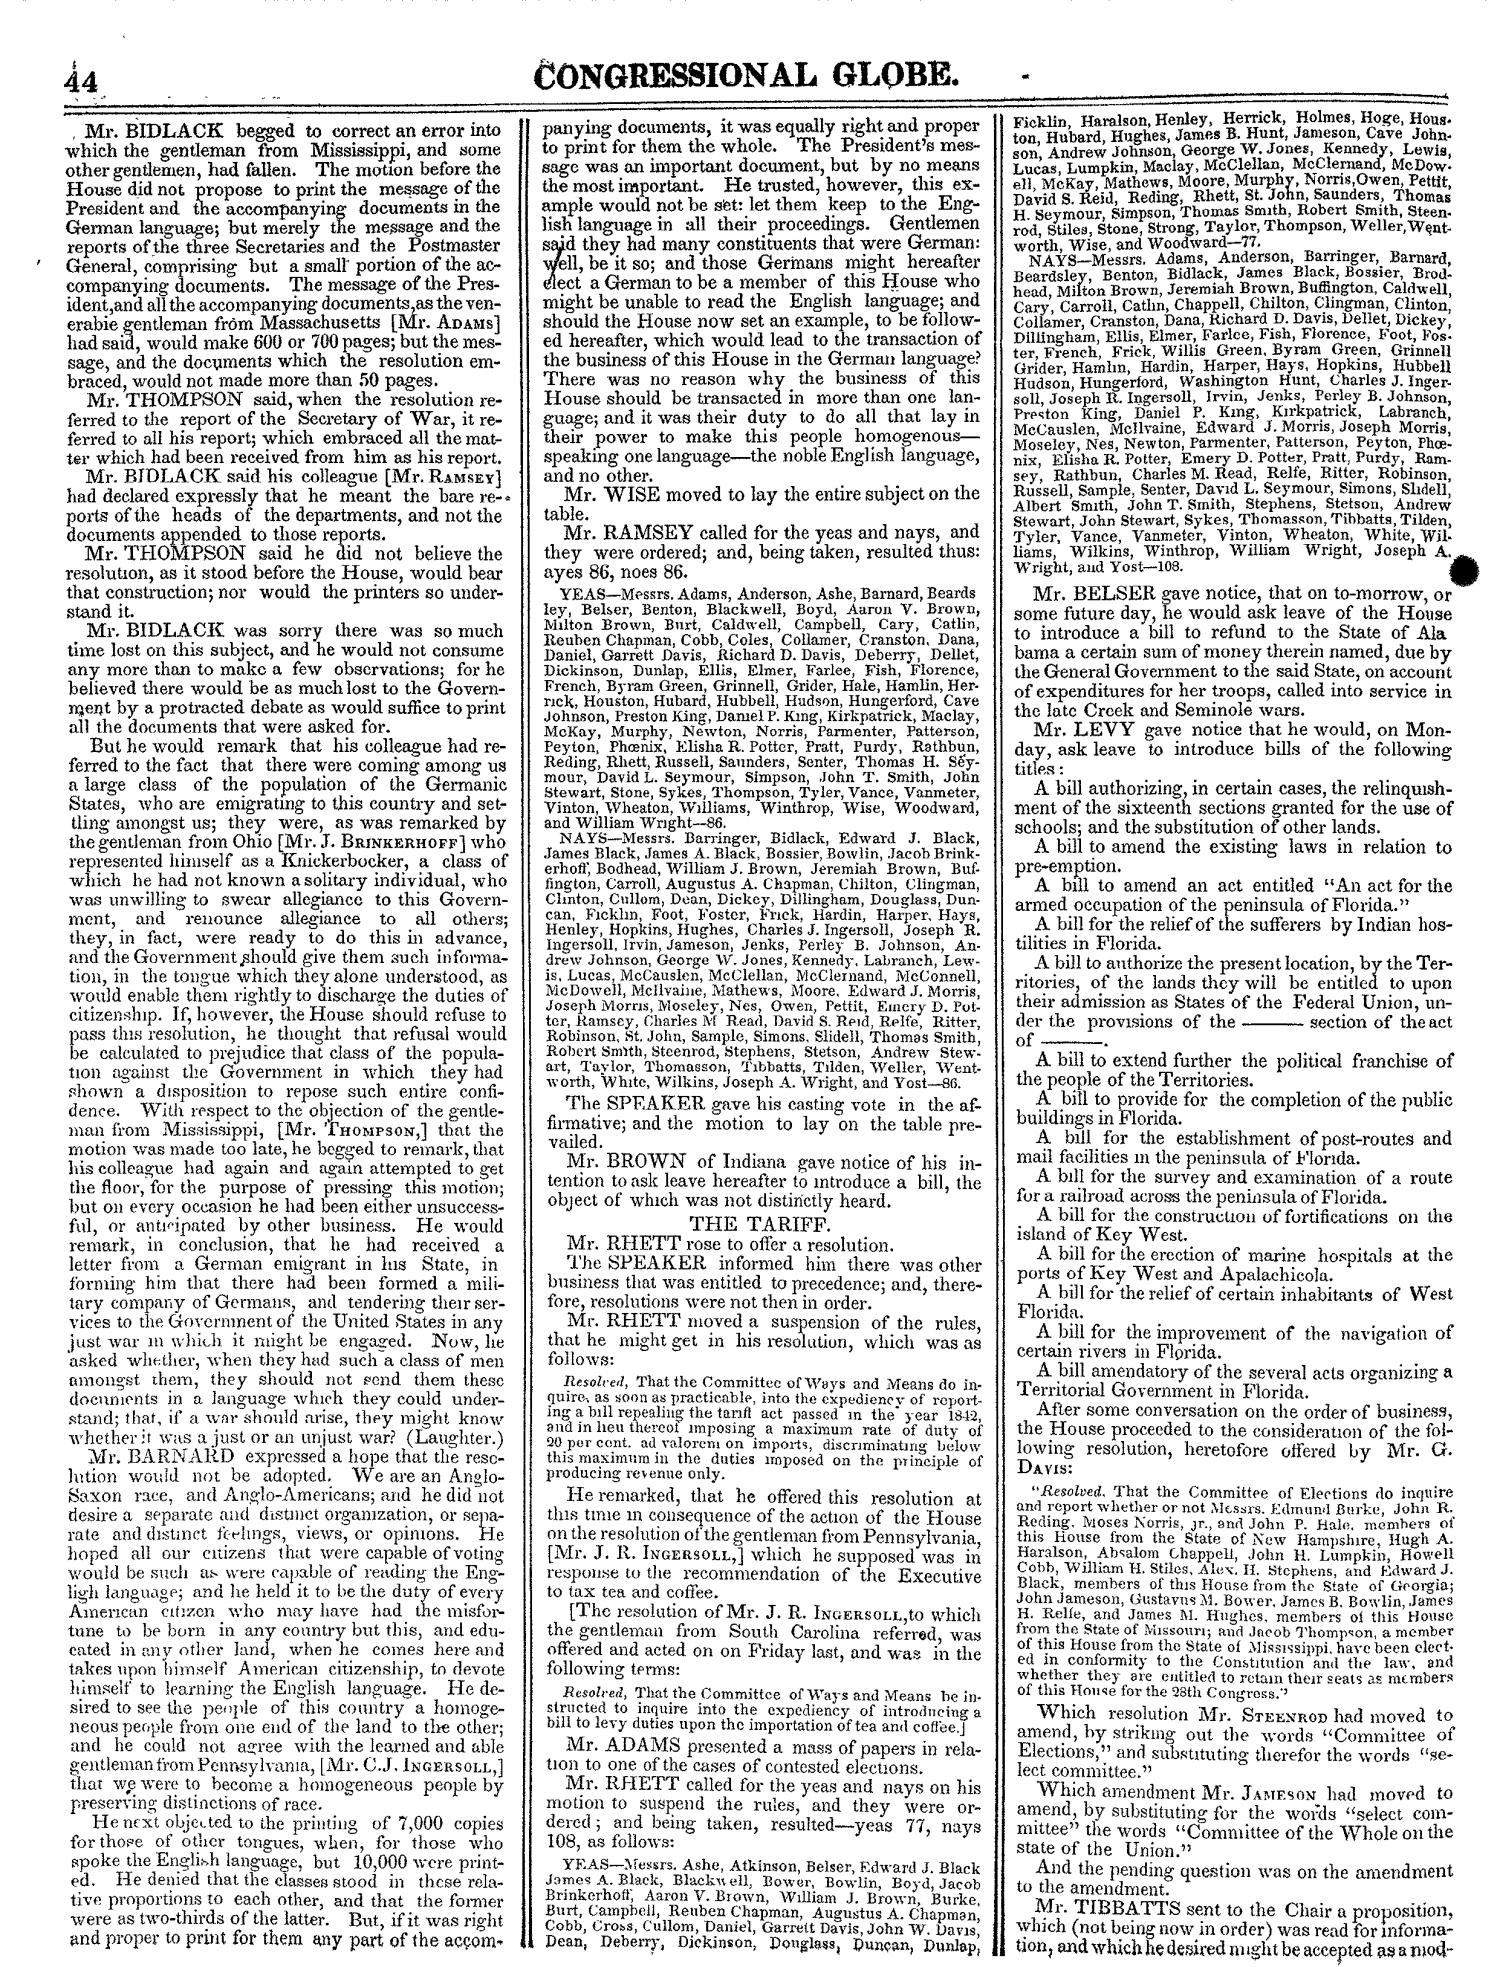 The Congressional Globe, Volume 13, Part 1: Twenty-Eighth Congress, First Session                                                                                                      44